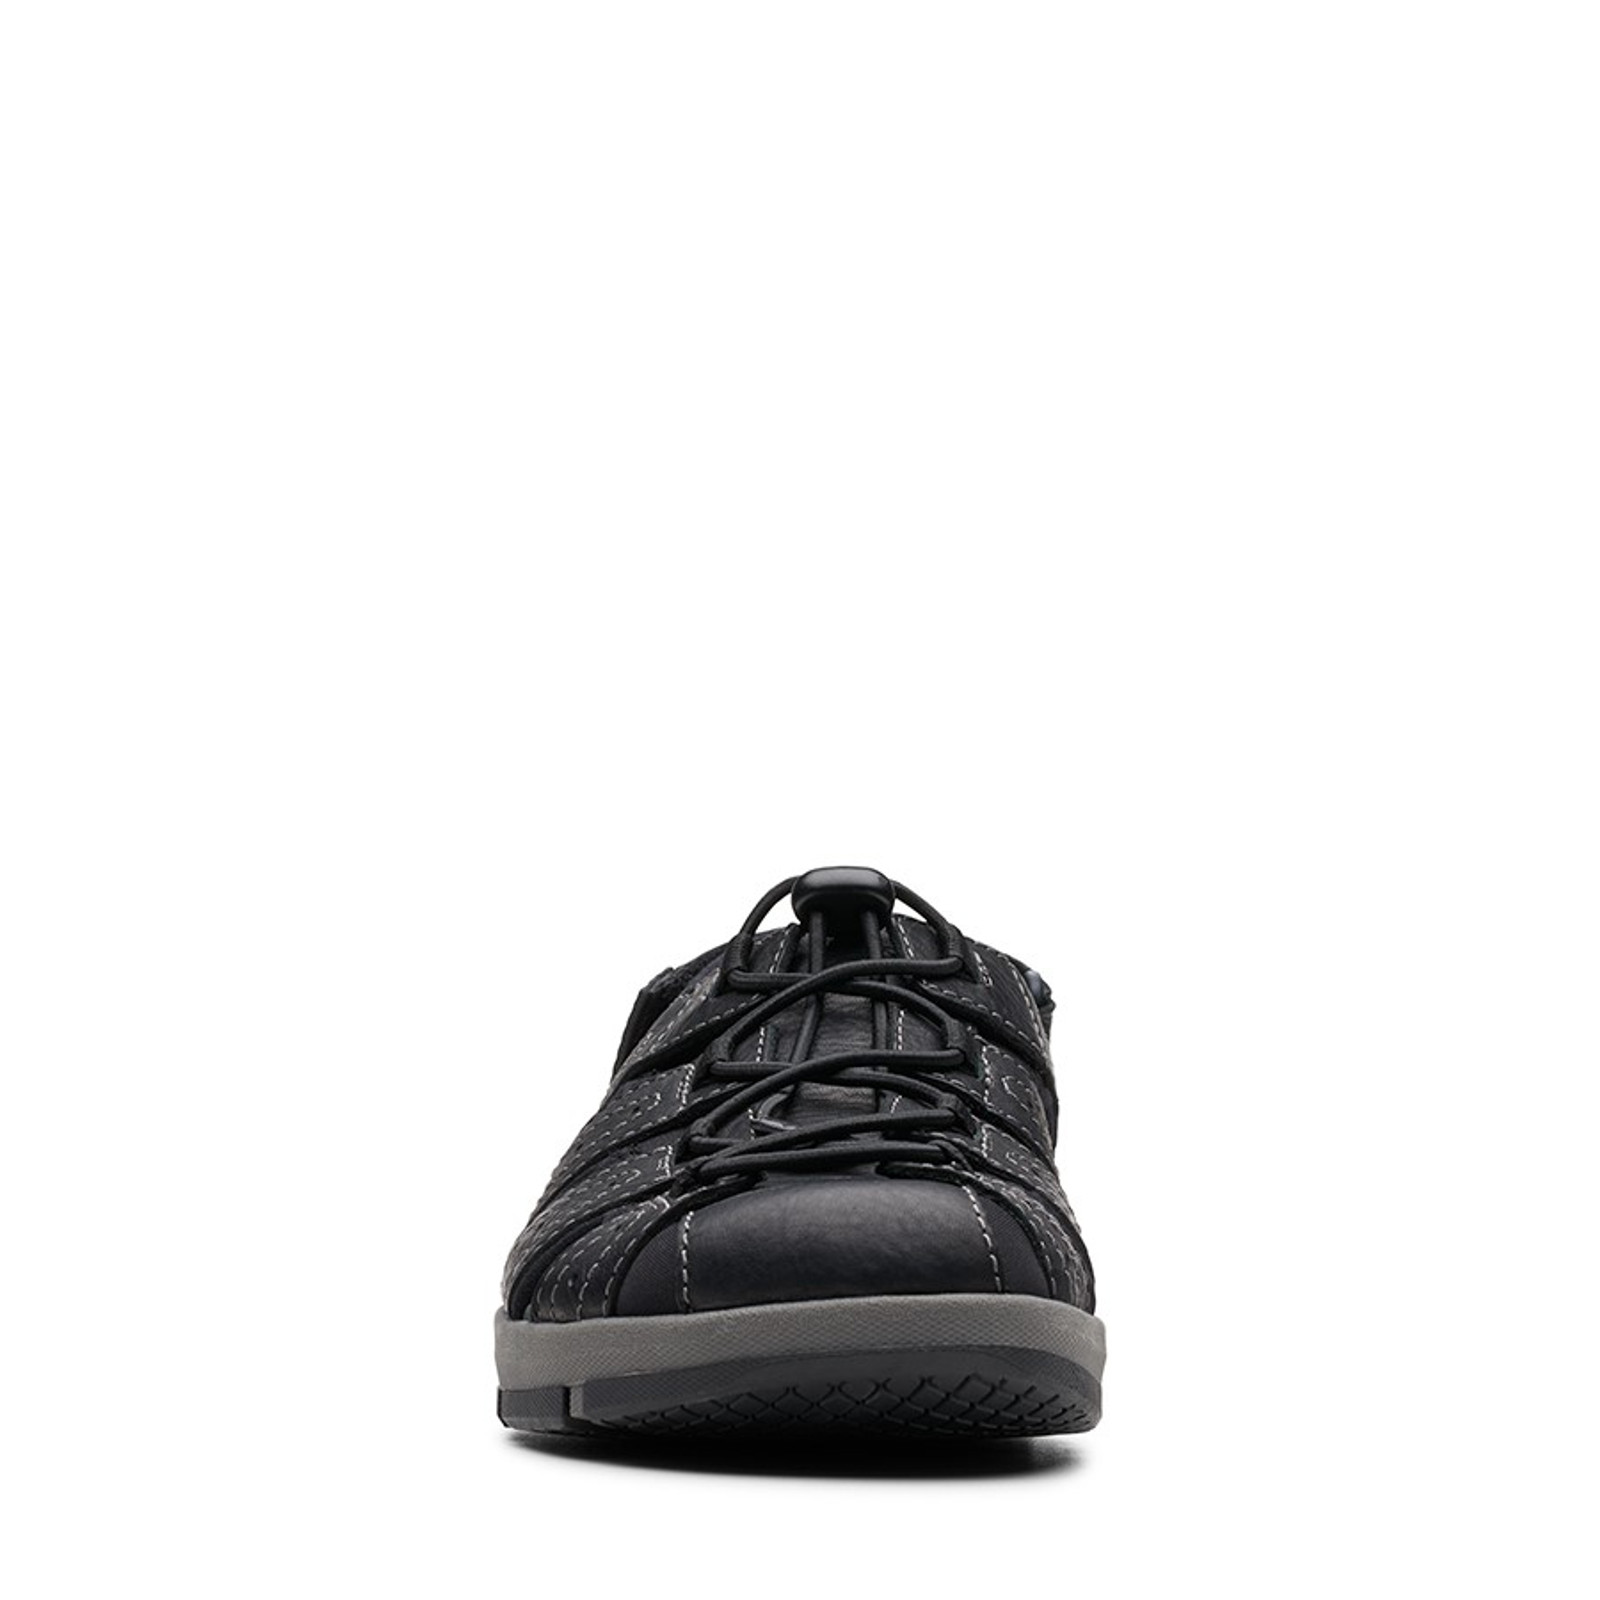 Clarks Mens BRIXBY COVE Black Leather